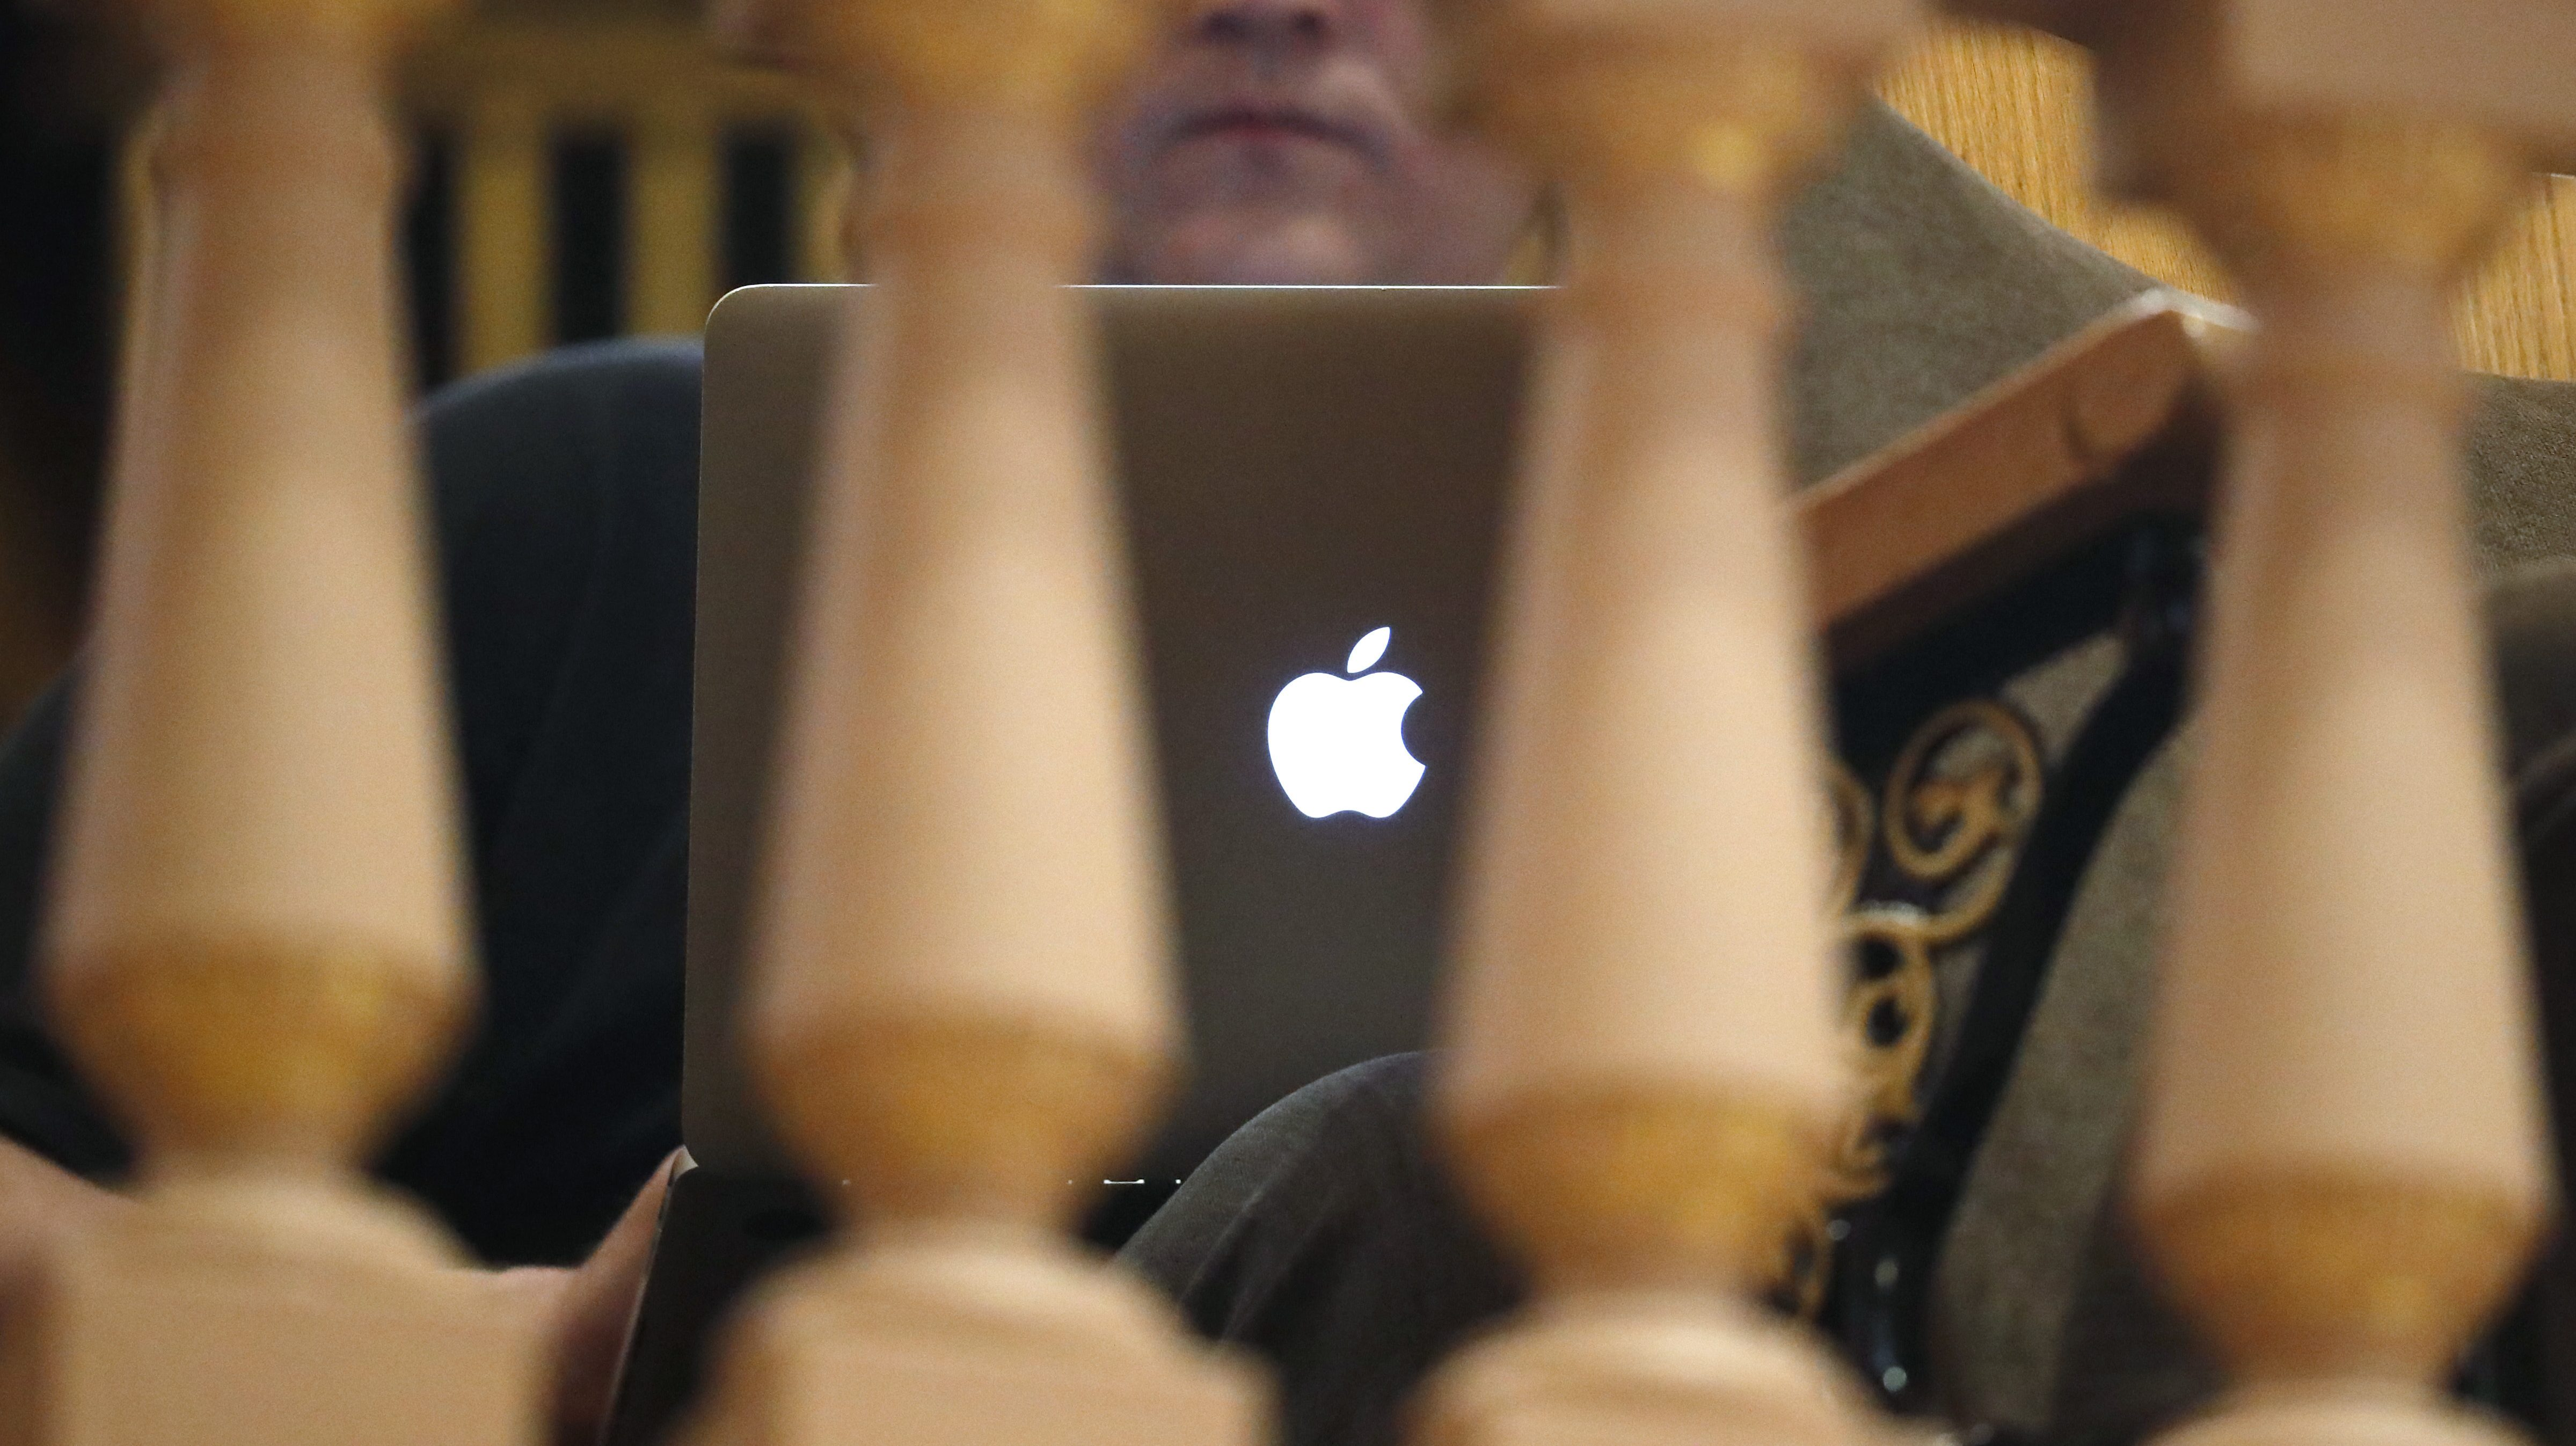 Using an Apple MacBook from behind a gate